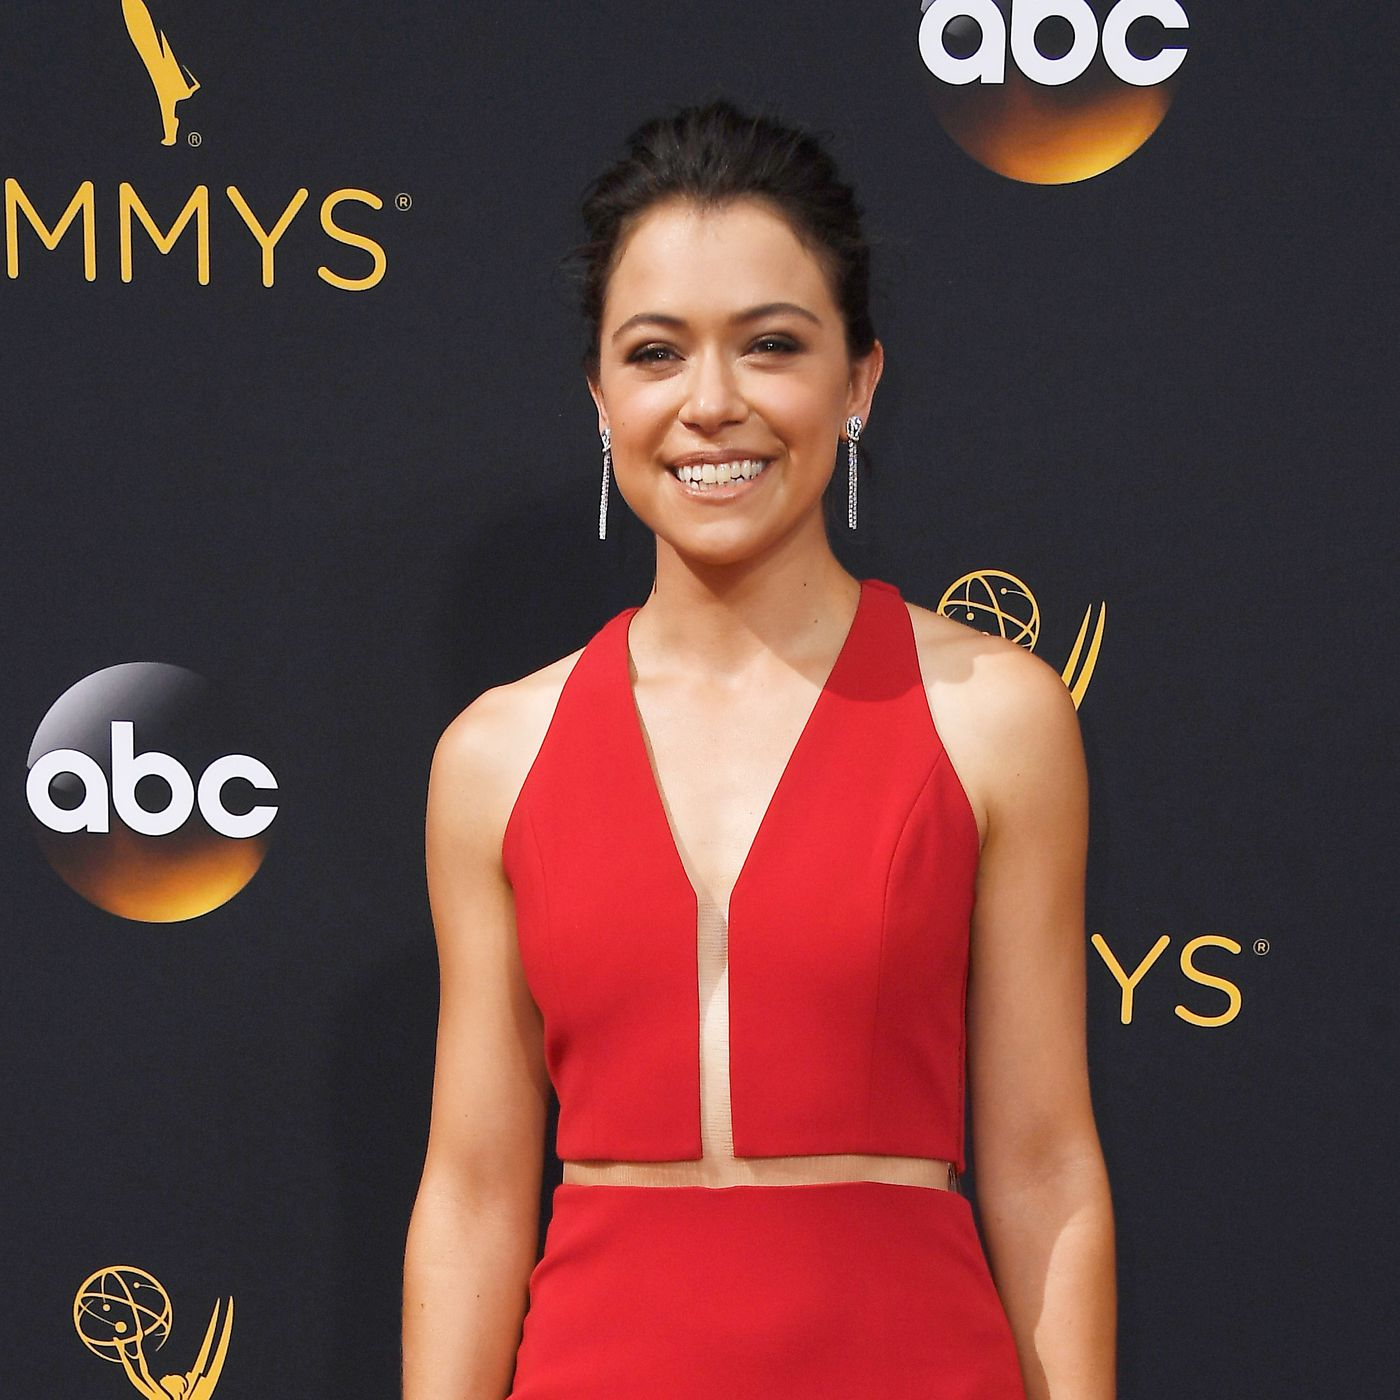 Emmys 2016: Tatiana Maslany wins for Orphan Black (finally) - The Verge